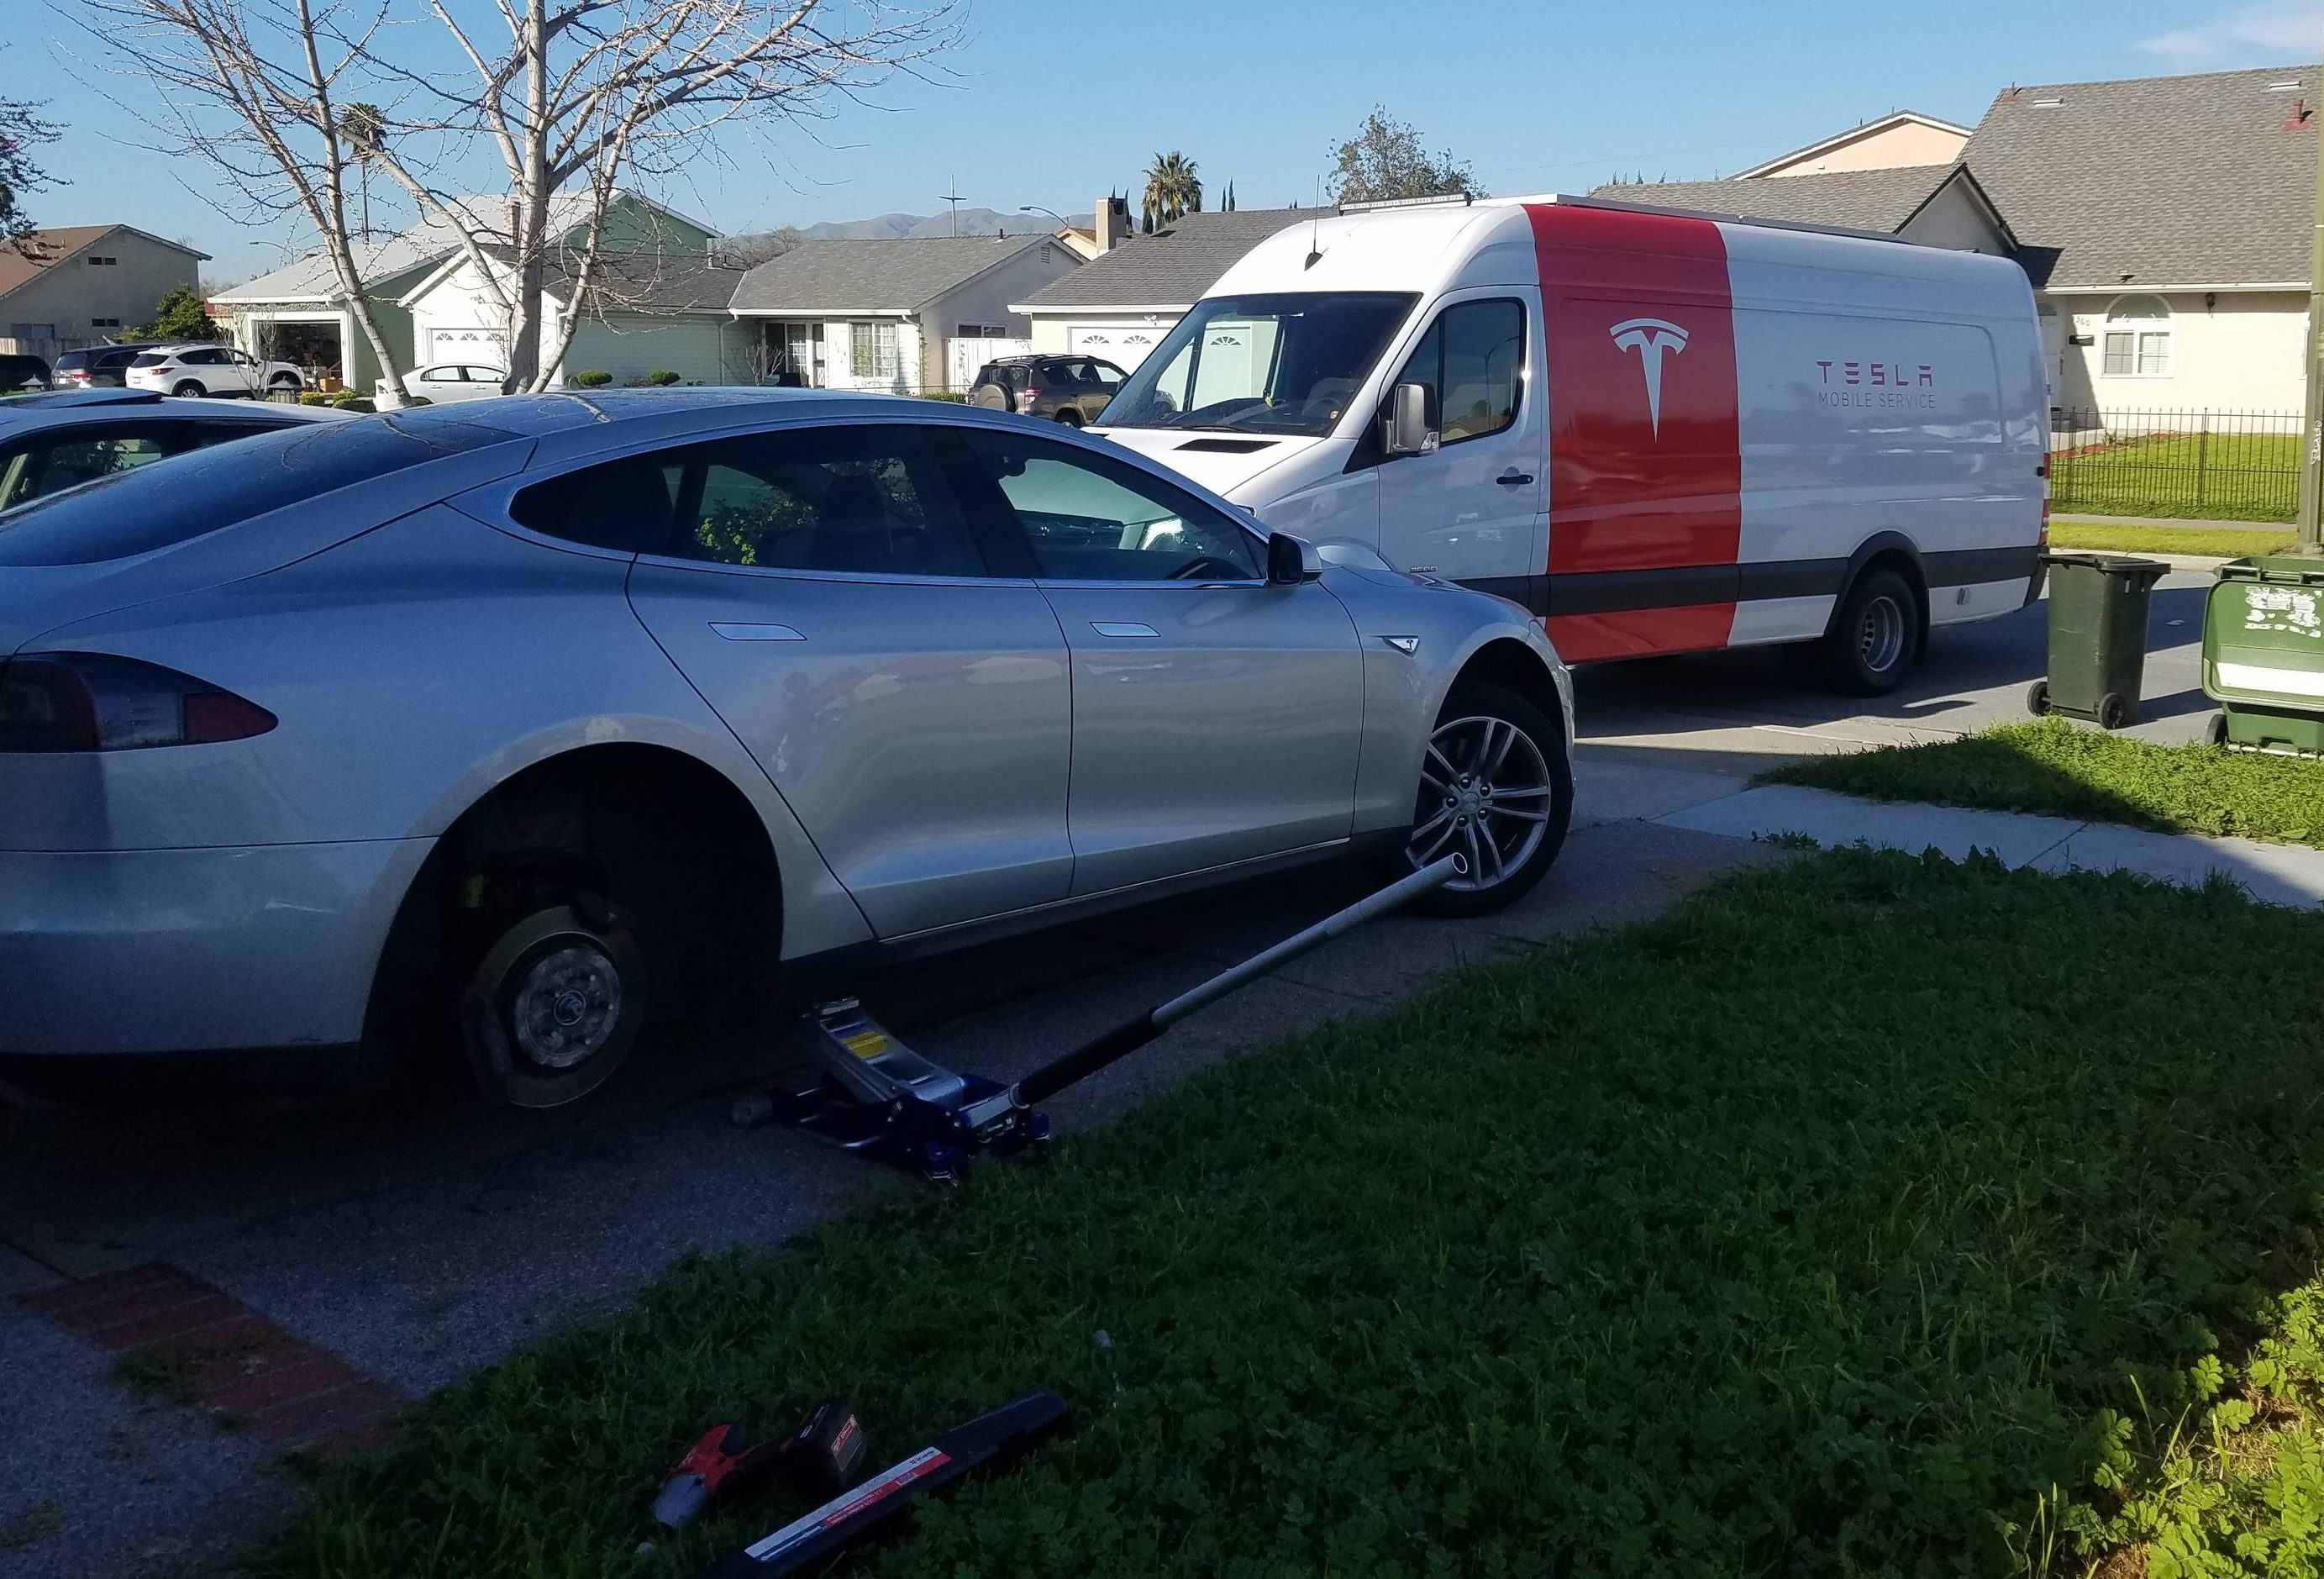 Tesla-mobile-service-van-tire-repair-2